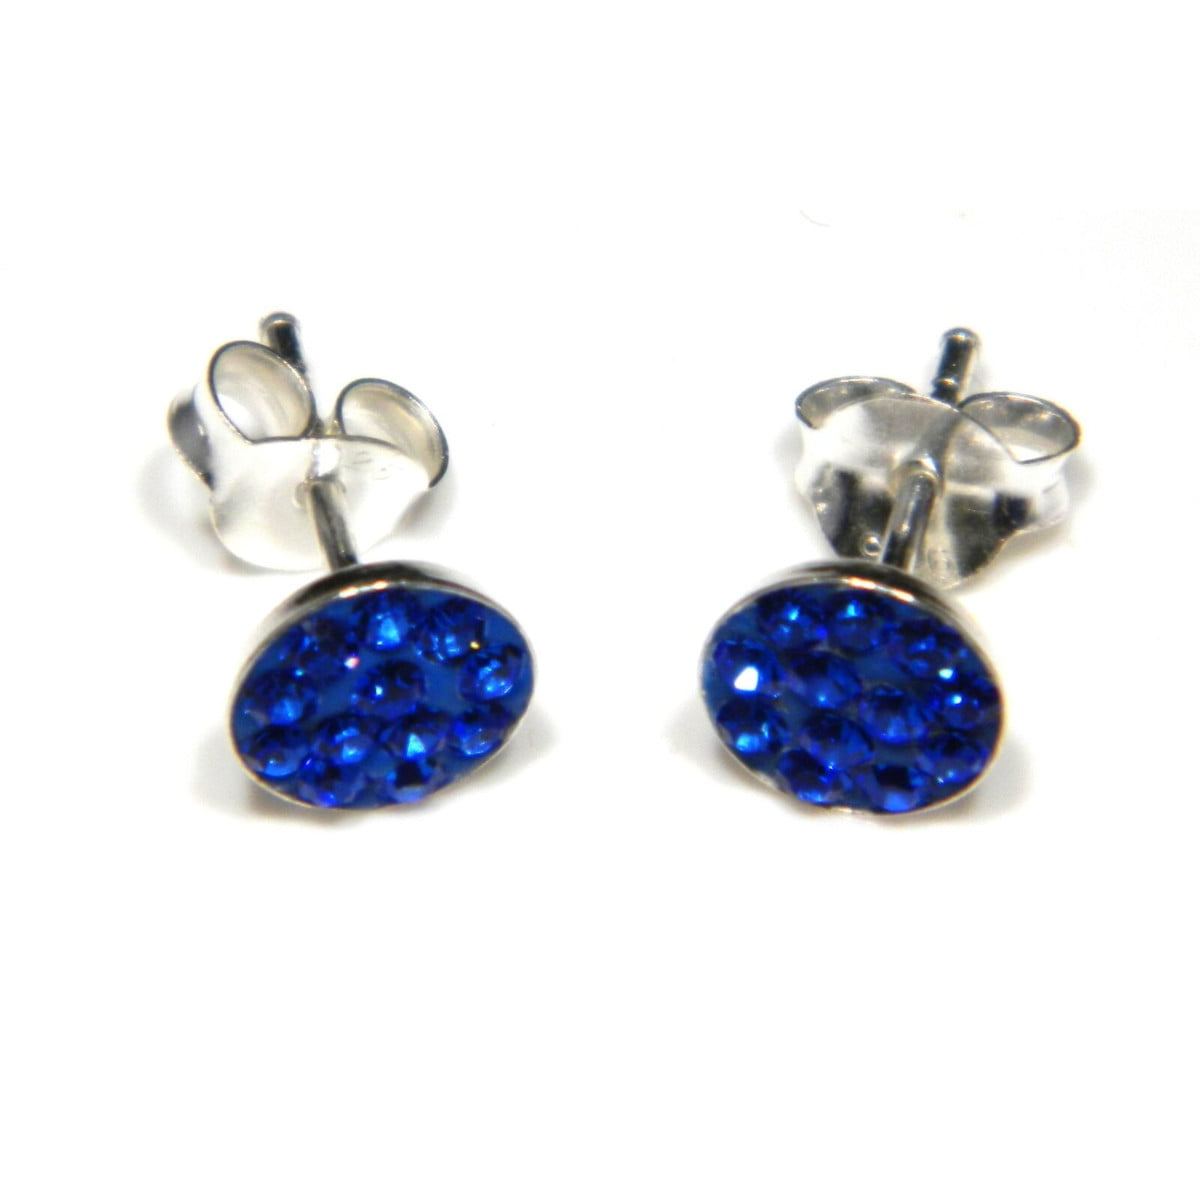 6 mm blue coloured crystal round stud earrings in sterling silver